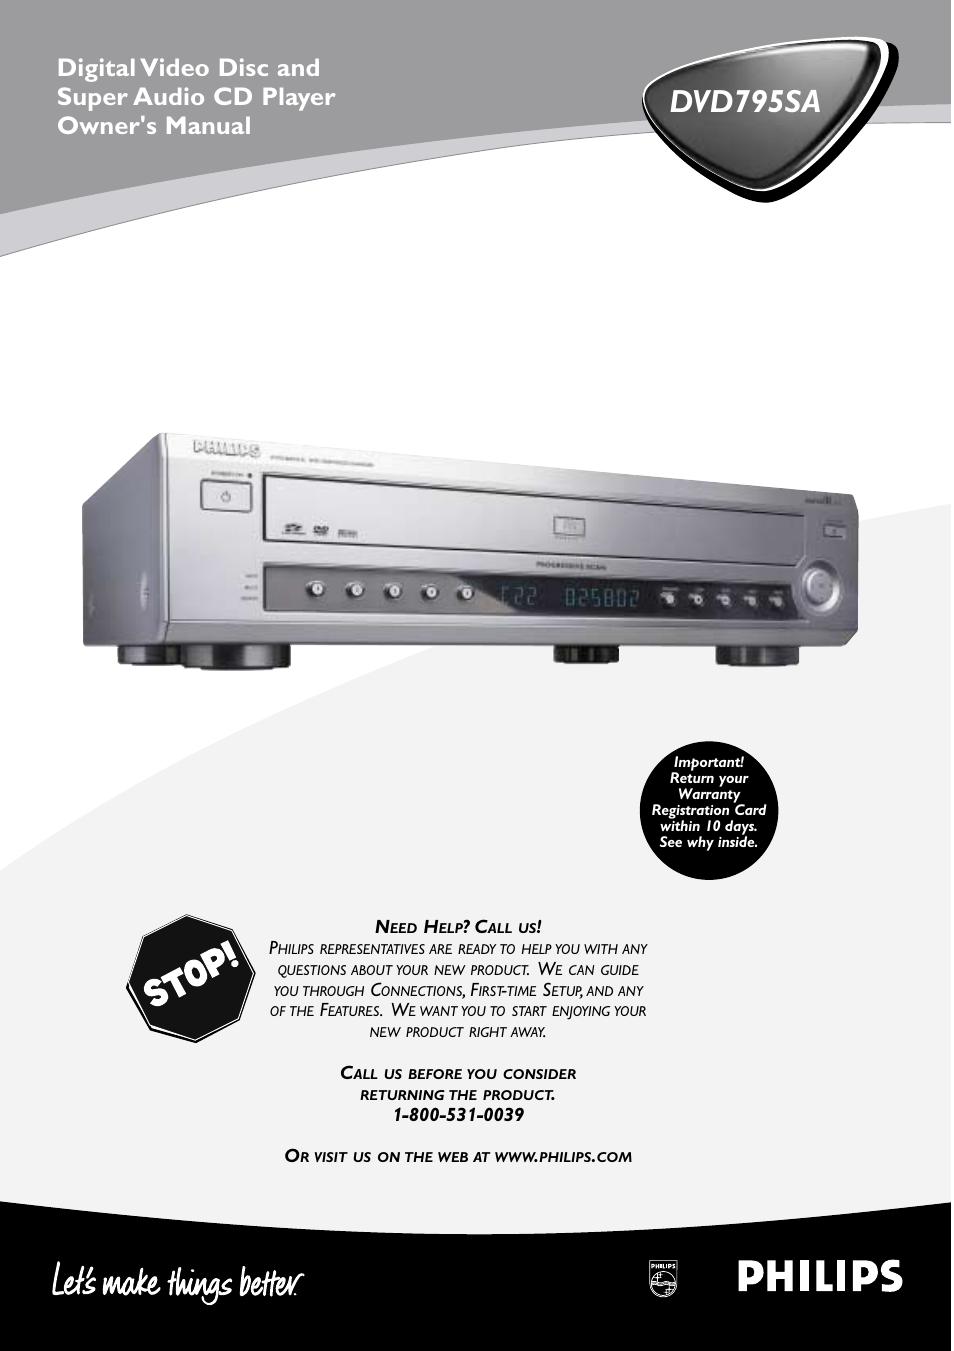 philips dvd795sa 99 user manual 55 pages rh manualsdir com RCA LED Disc Player Laser Video Disc Player